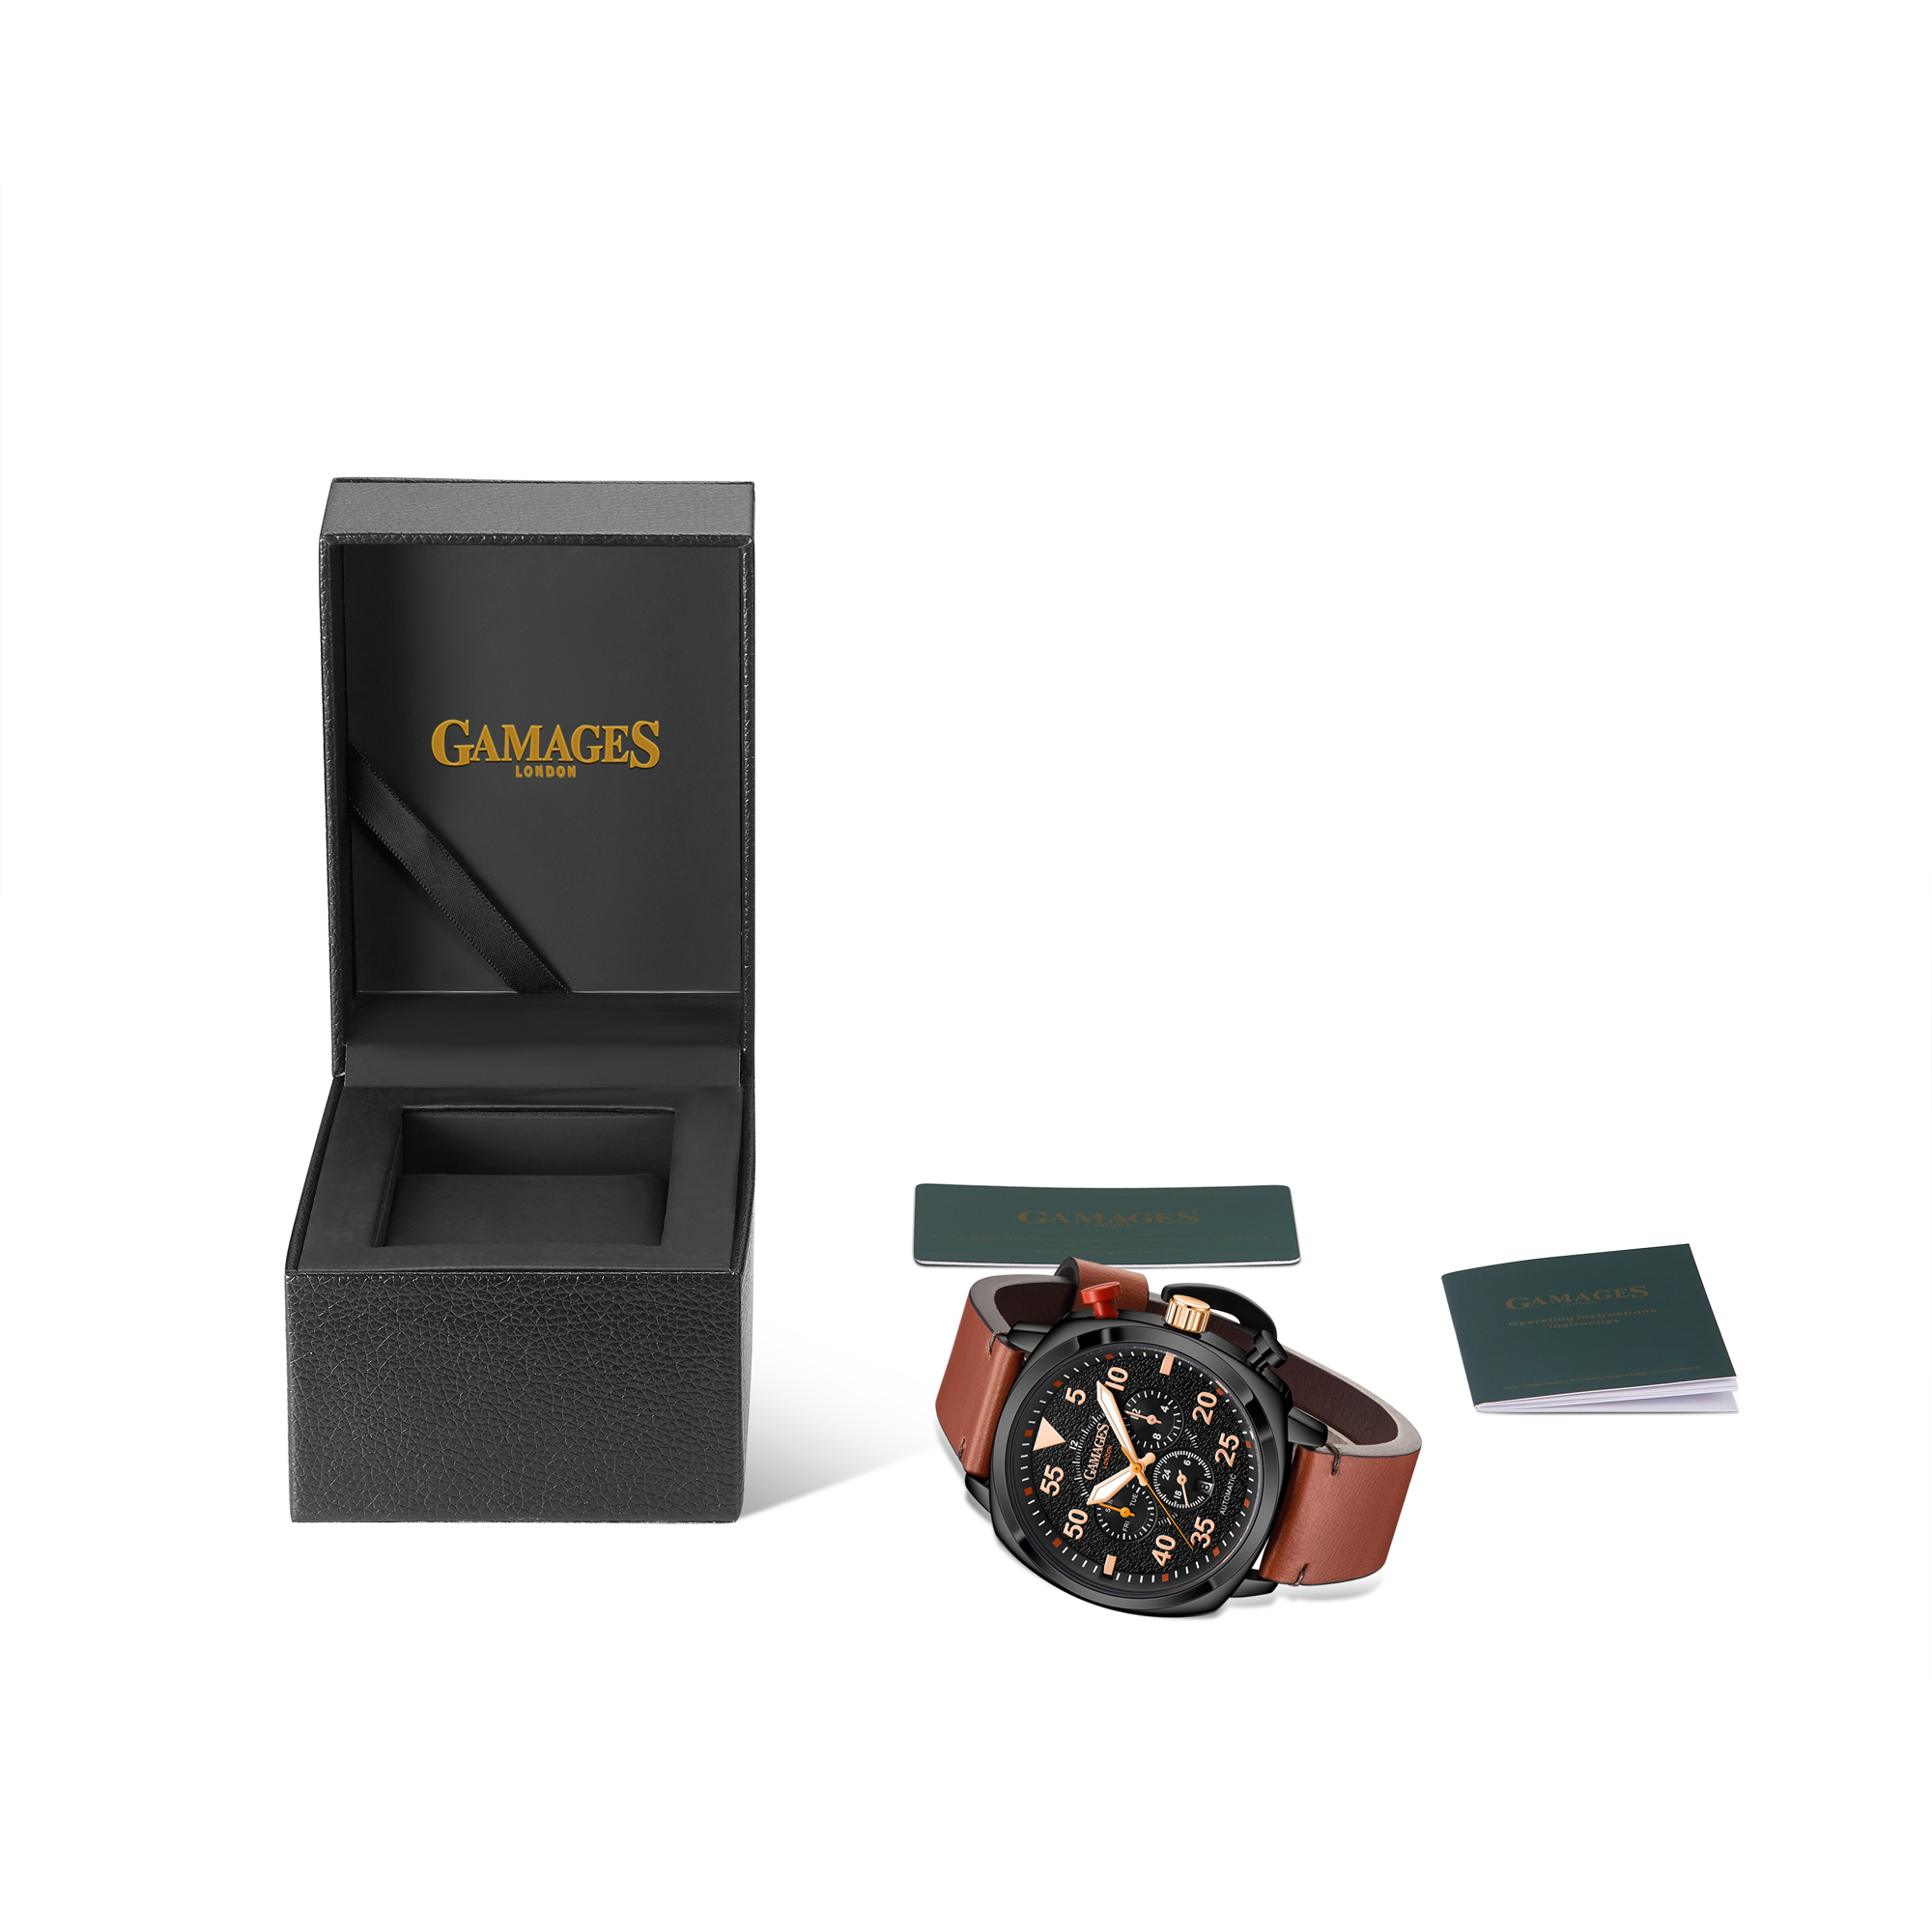 Ltd Edition Hand Assembled Gamages Aviation Automatic Black – 5 Year Warranty & Free Delivery - Image 2 of 4